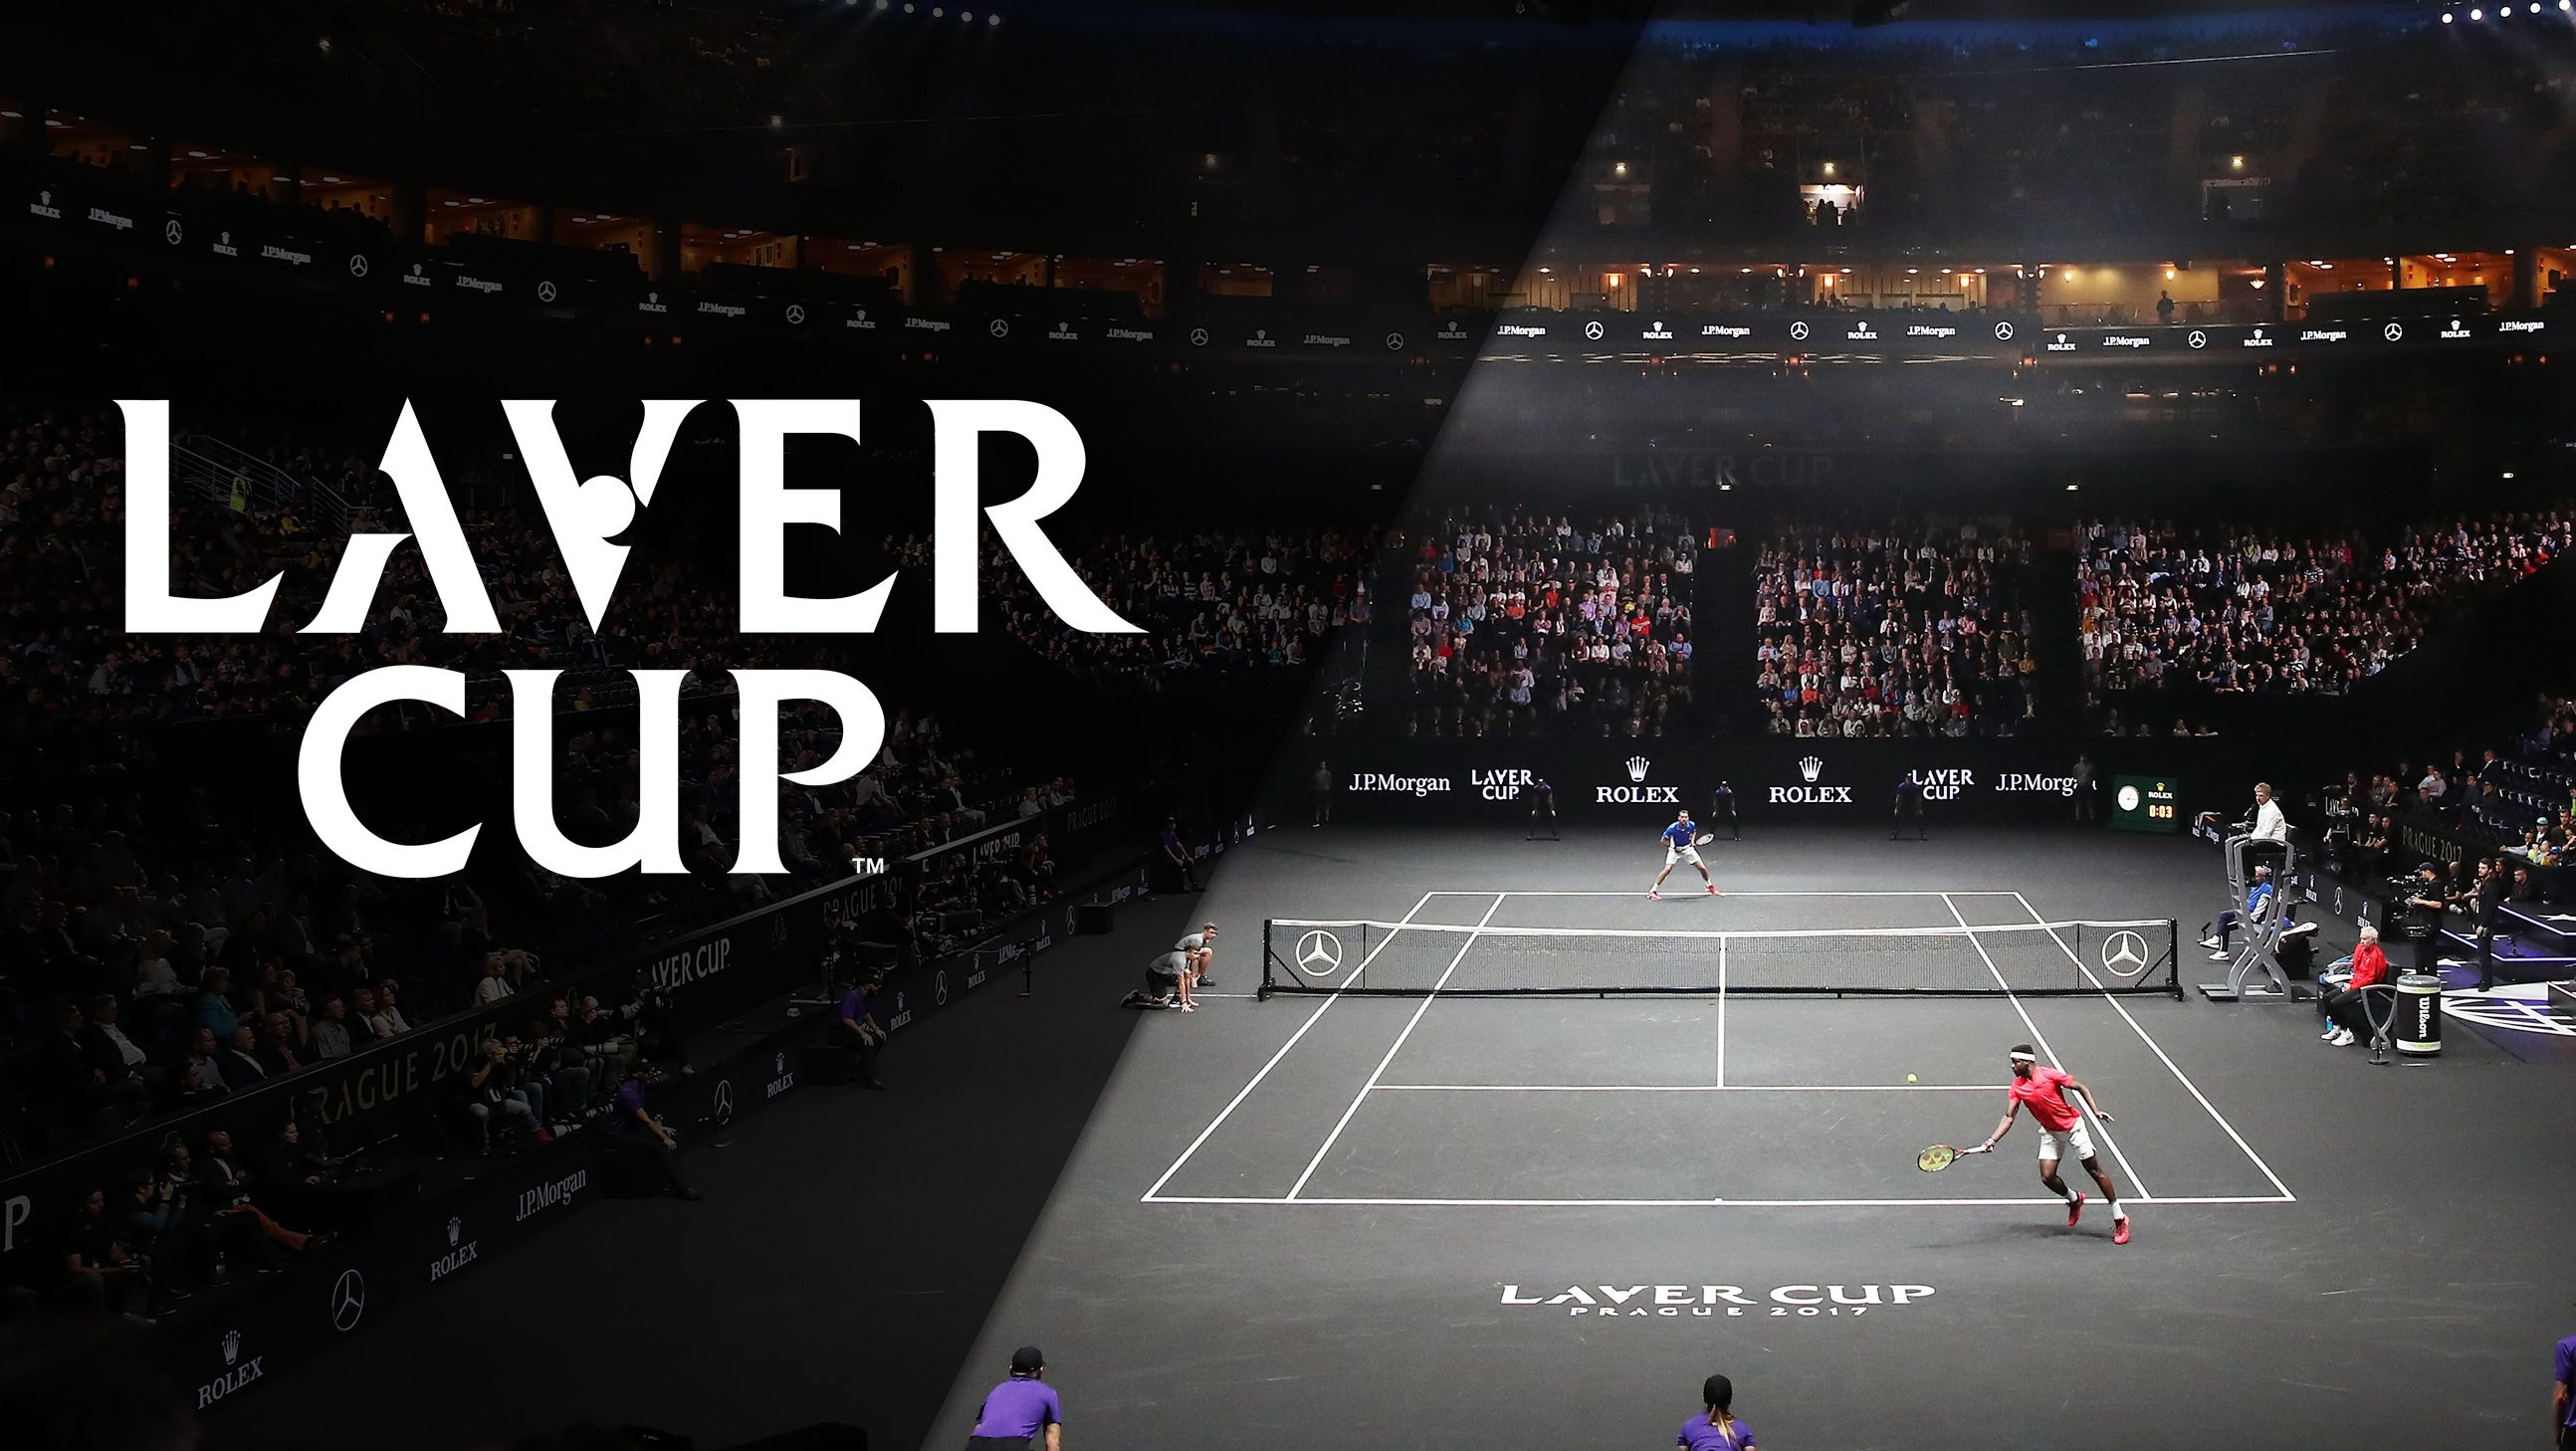 Laver Cup (Day 1 - Night Session)